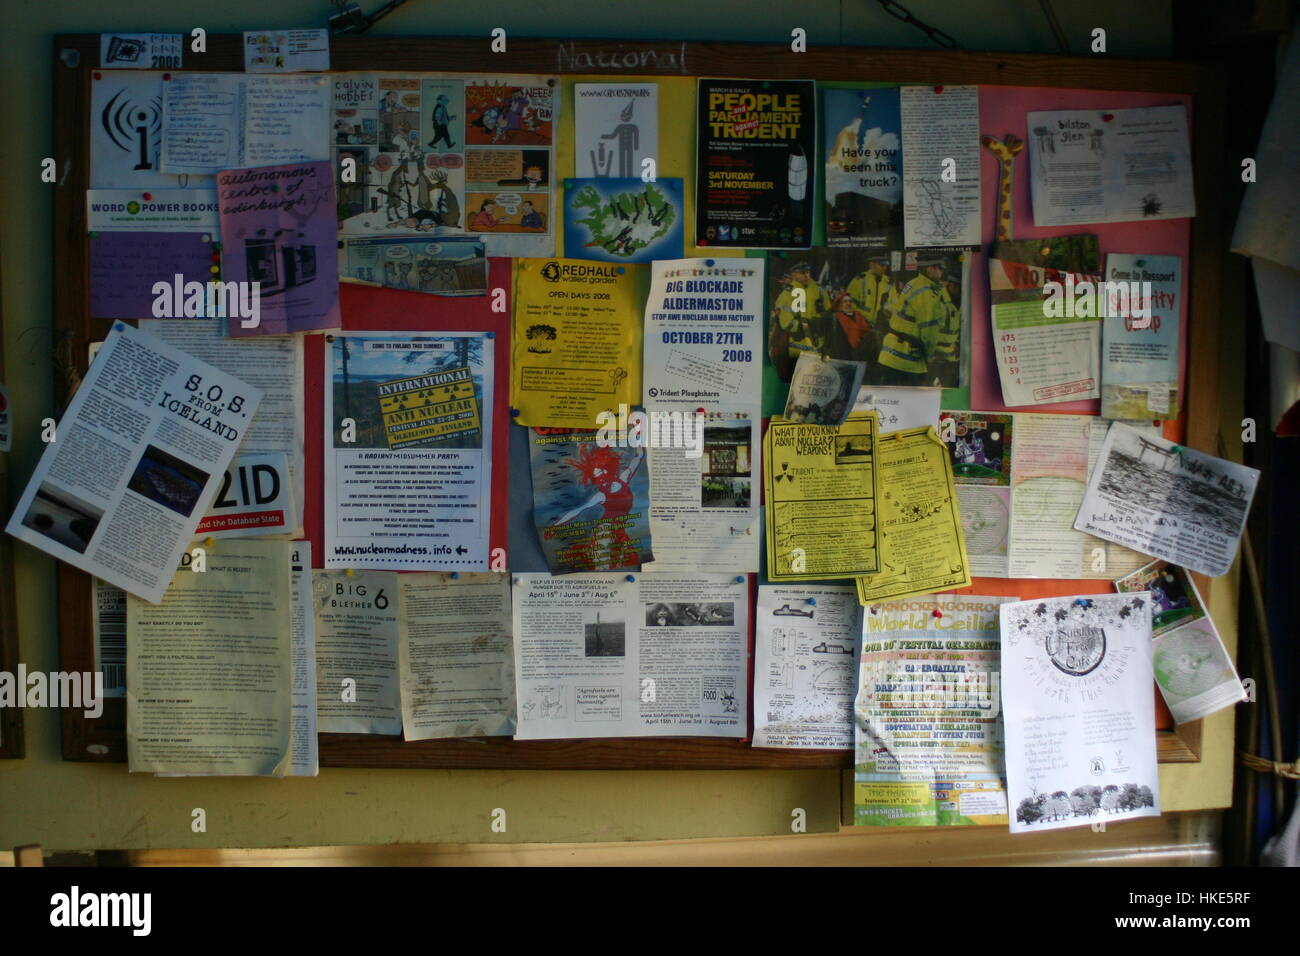 Bilston Glen notice-board. Bilston Glen Woodland Camp August 2005 feature on campdwellers staging a protest to block - Stock Image